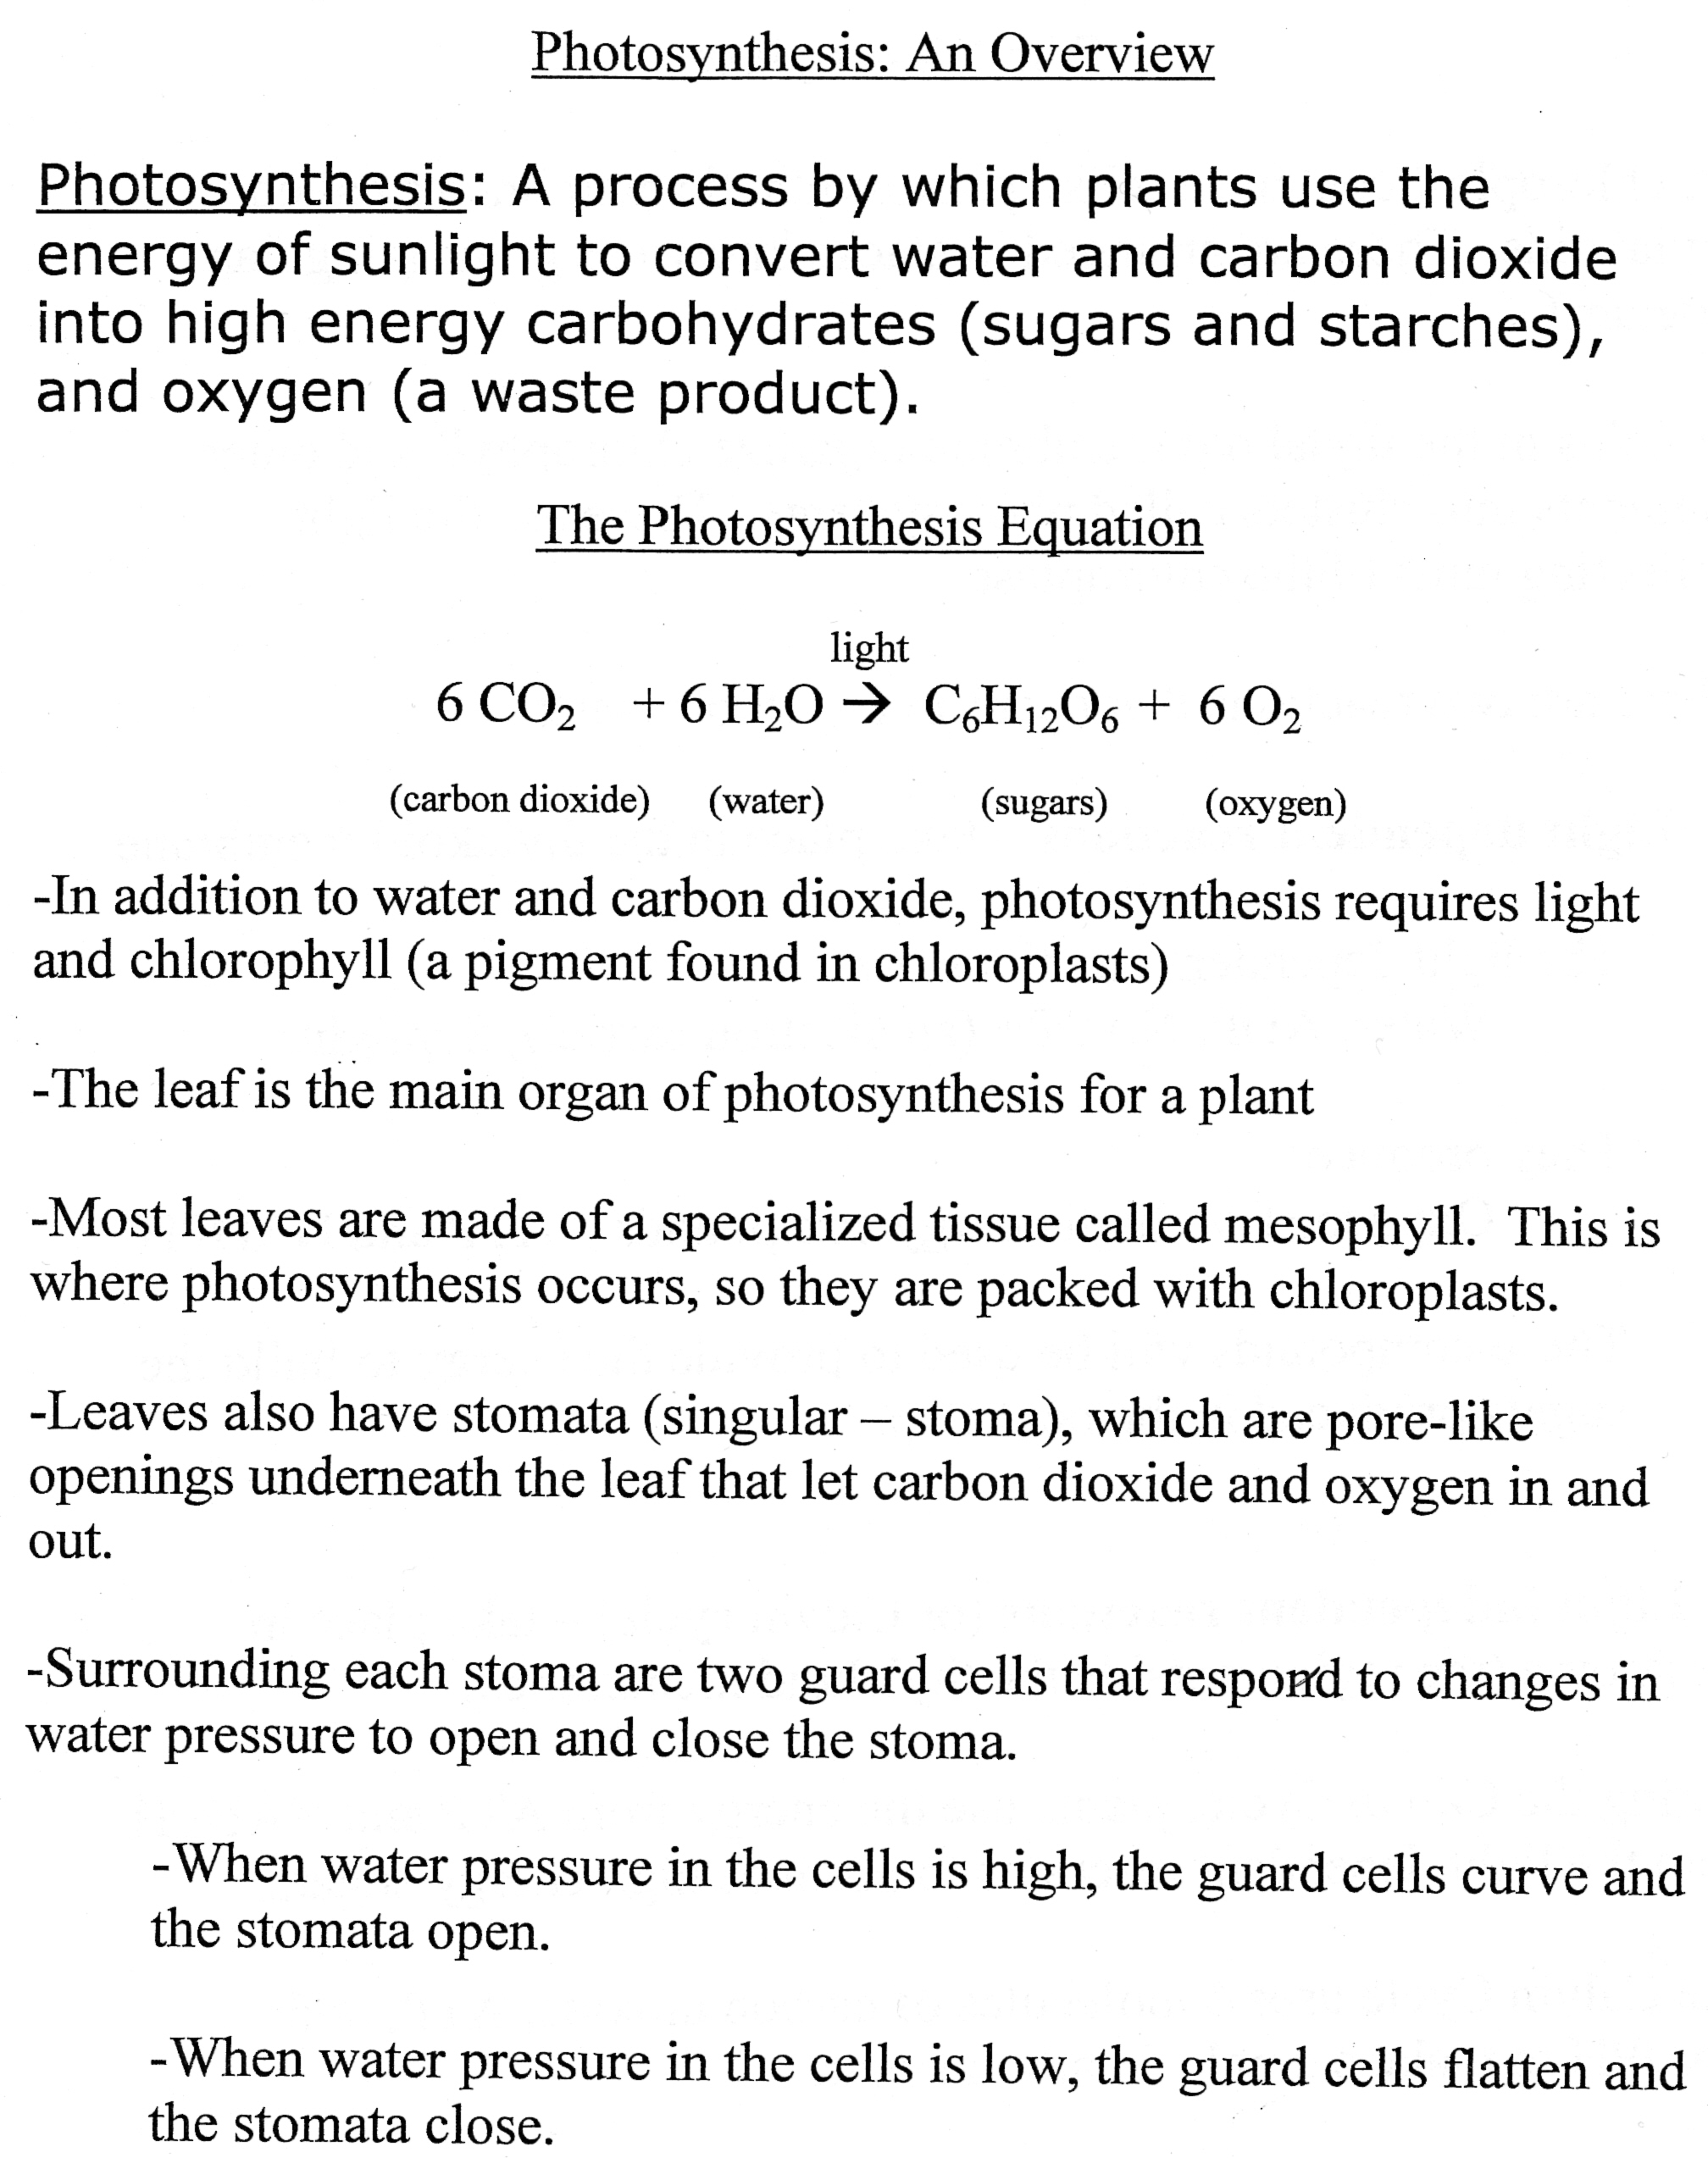 15 Best Images Of Plant Photosynthesis Worksheet